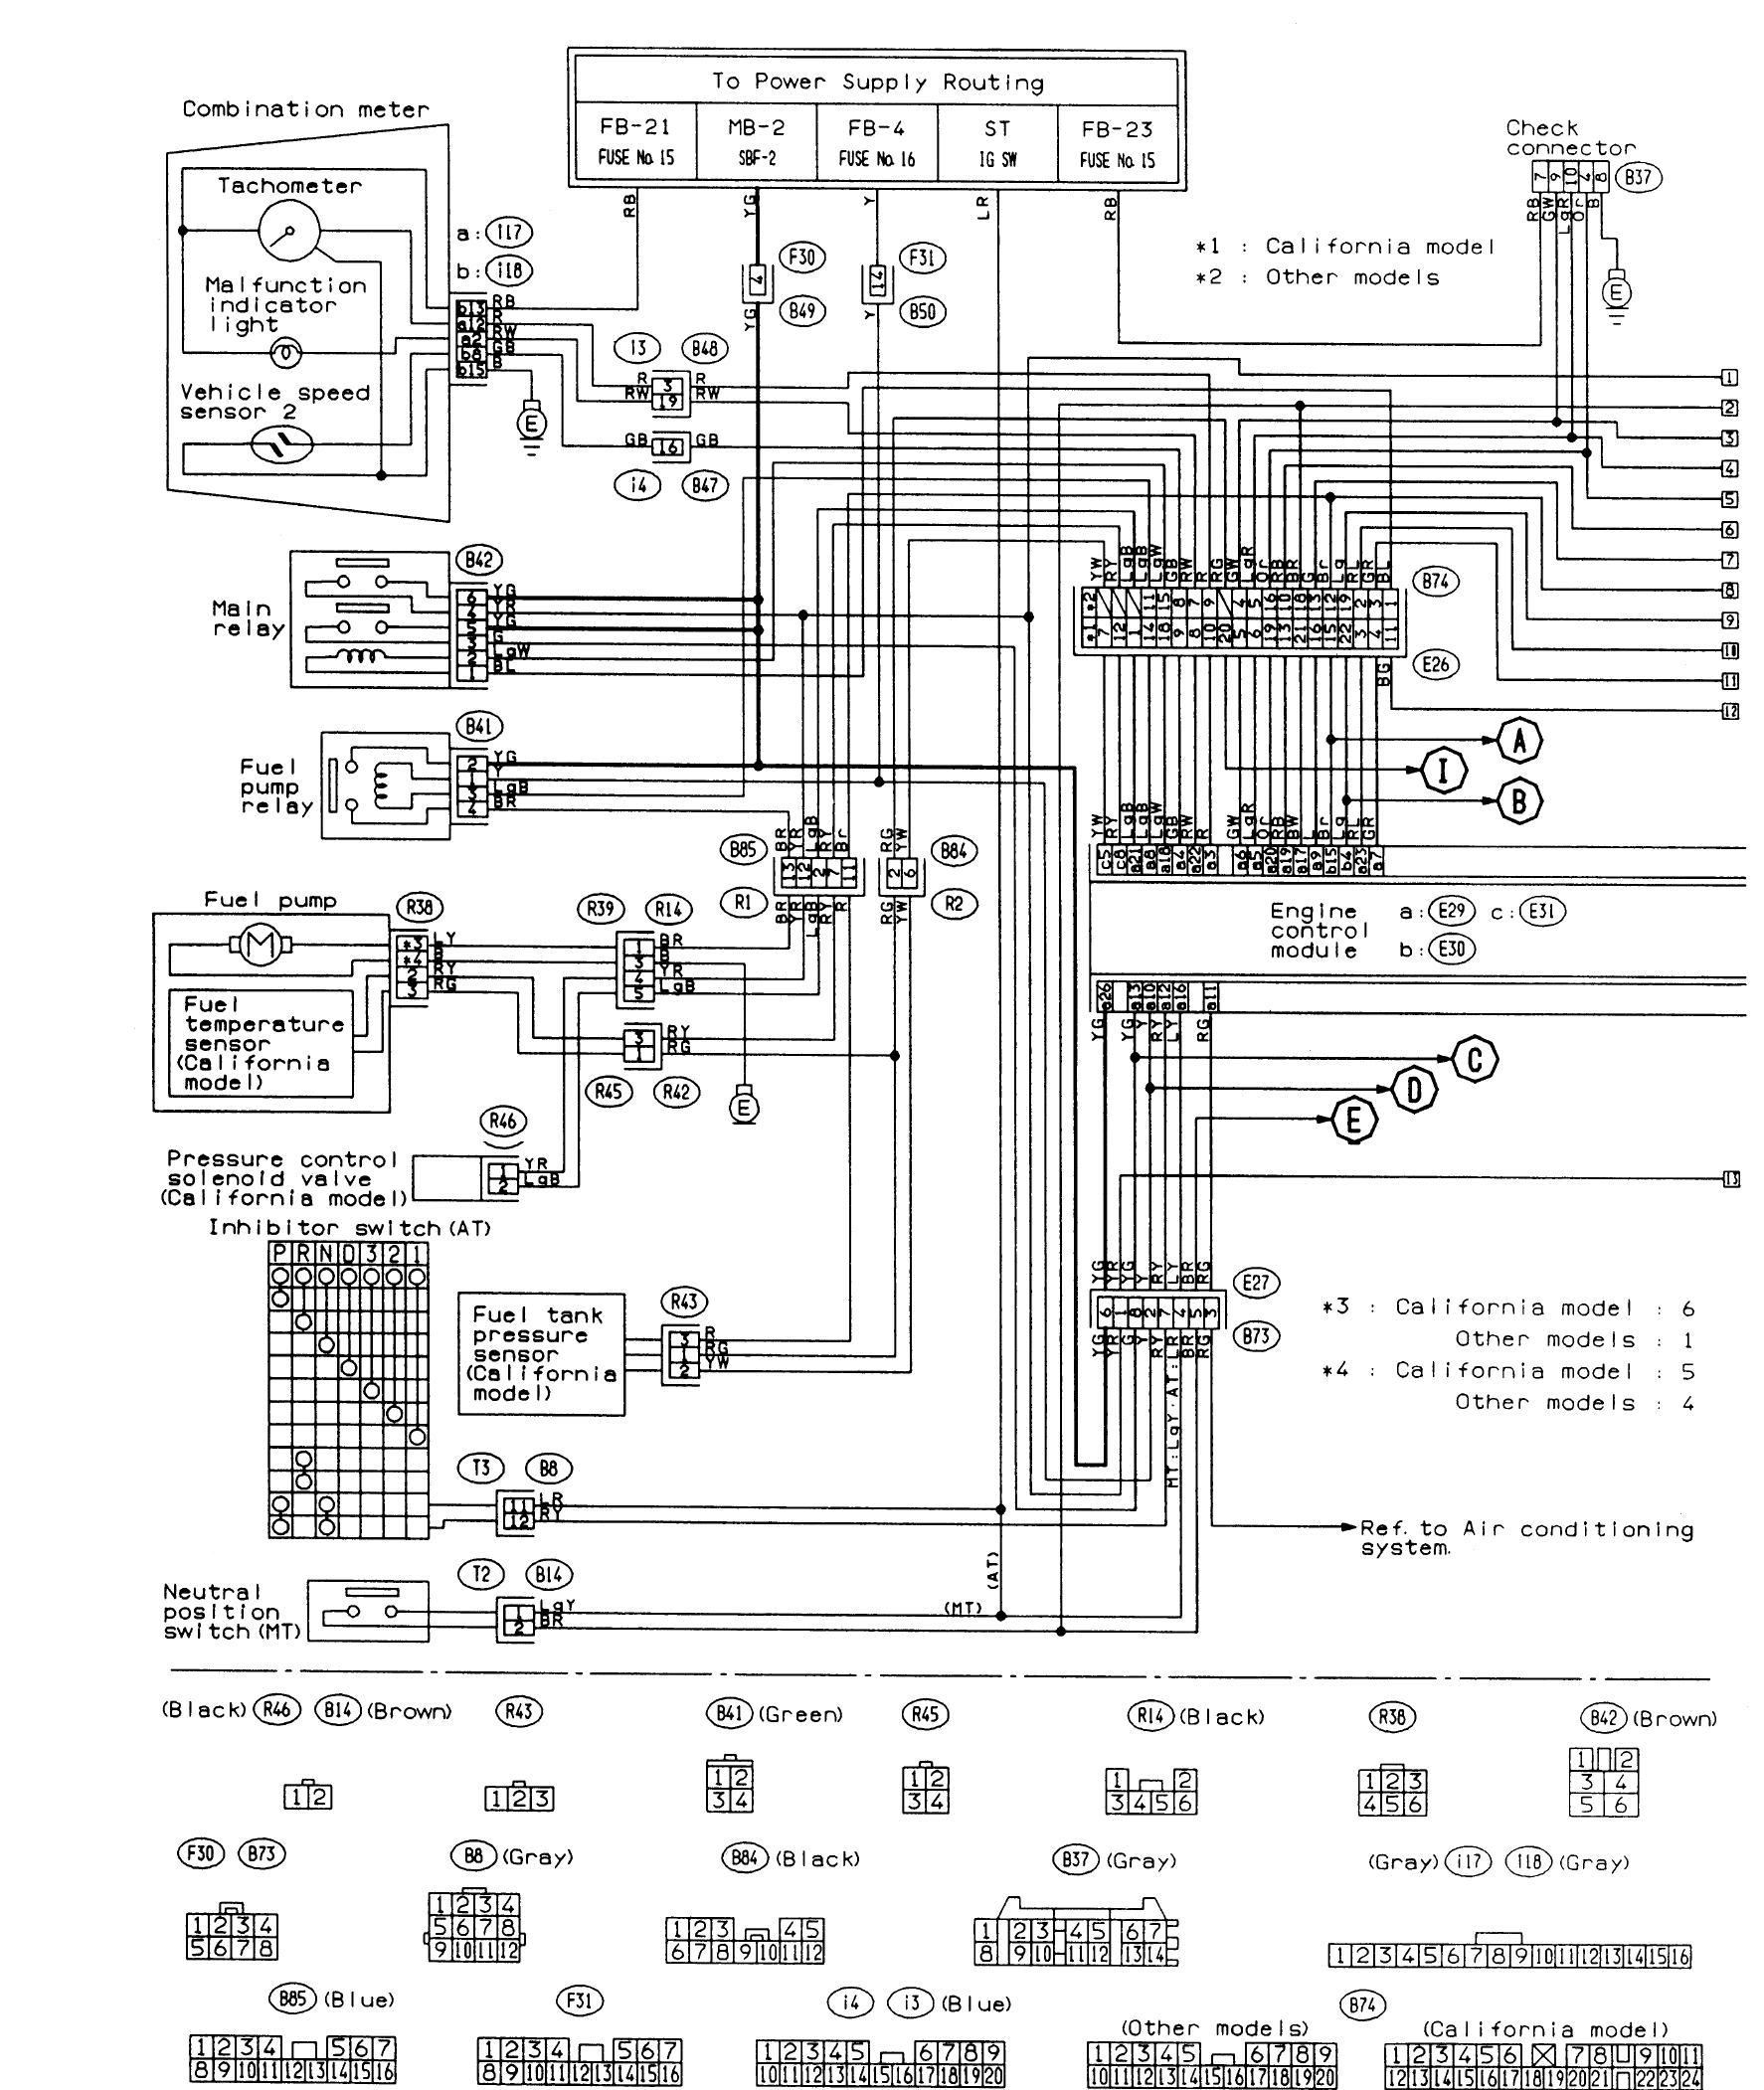 subaru ecu wiring diagram FUSlrCX 1995 subaru impreza wiring diagram electrical schematic of 1993 1996 Subaru Legacy Engine Diagram at alyssarenee.co